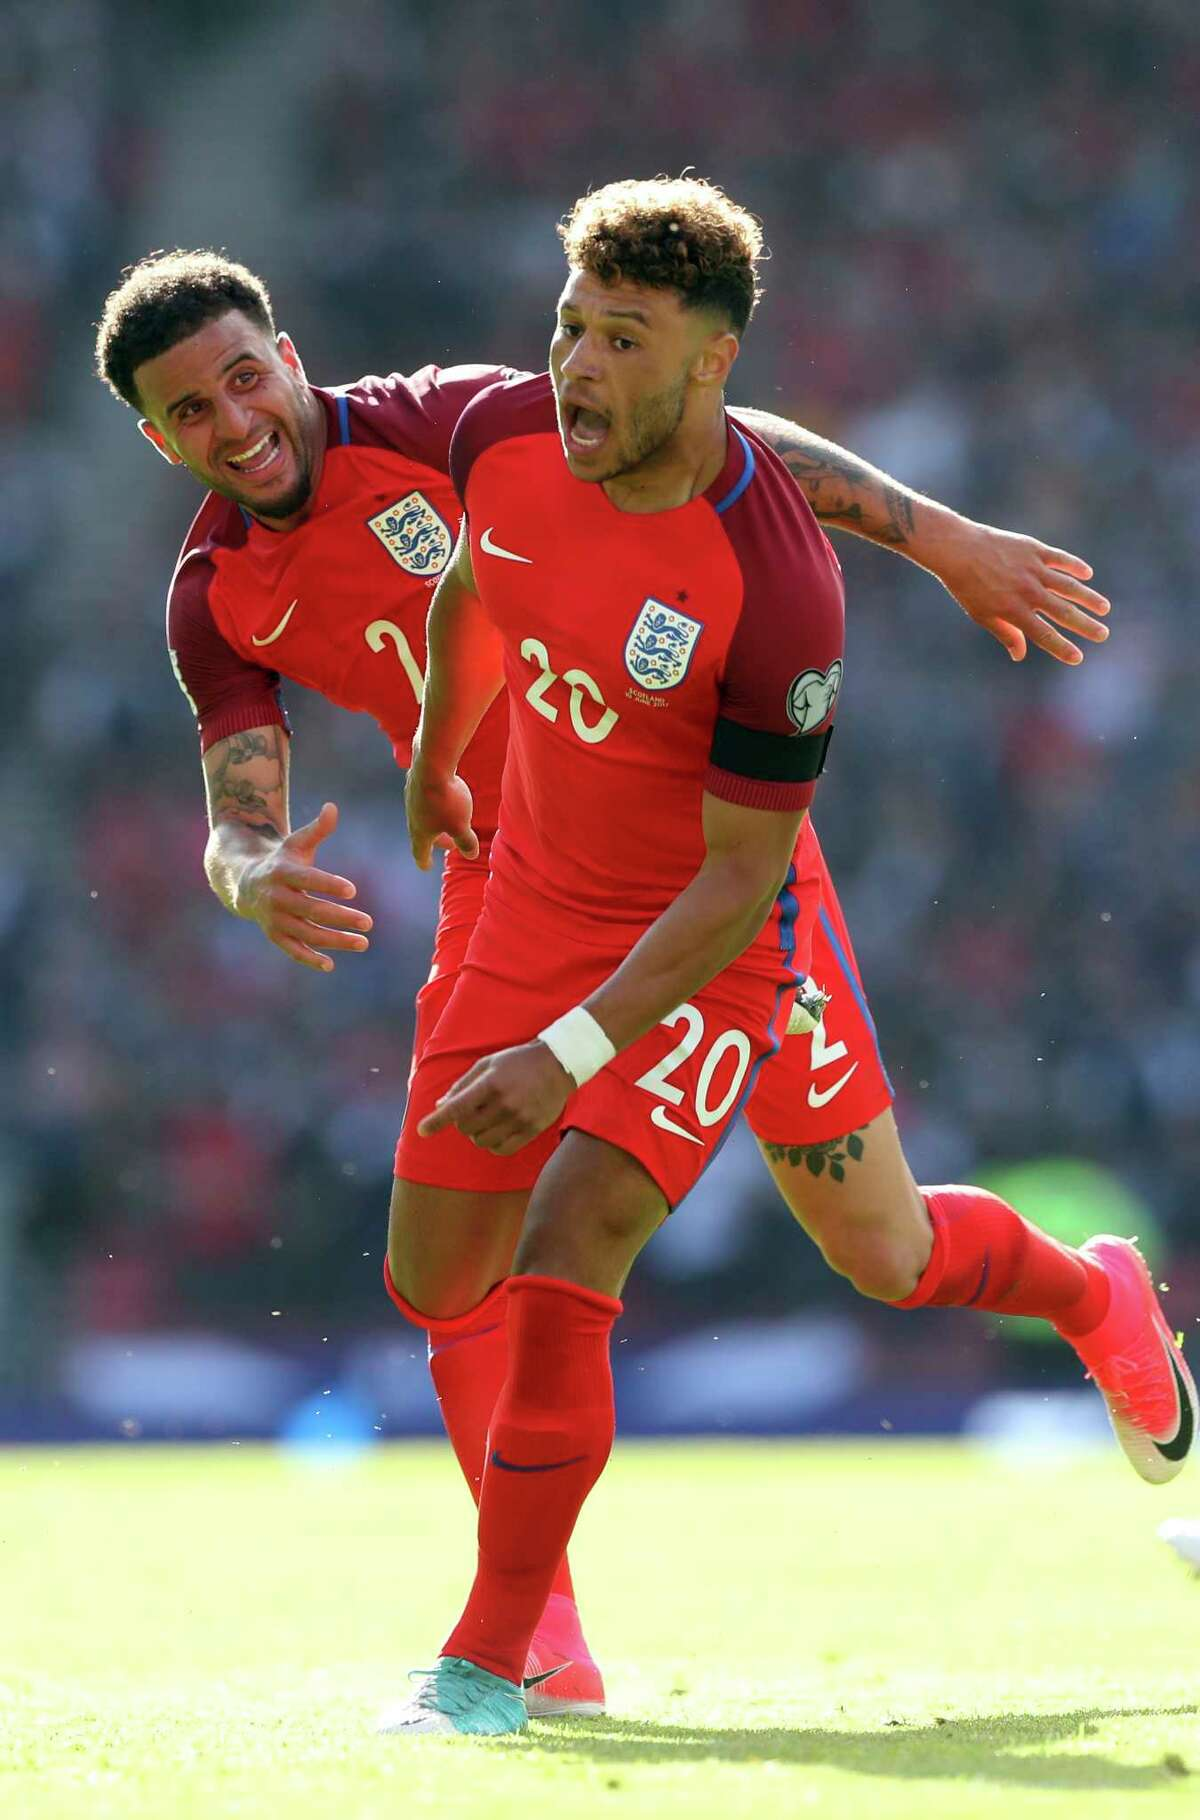 England's Alex Oxlade-Chamberlain, right, celebrates after scoring the opening goal during the World Cup Group F qualifying soccer match between Scotland and England at Hampden Park, Glasgow, Scotland, Saturday, June 10, 2017. (AP Photo/Scott Heppell)